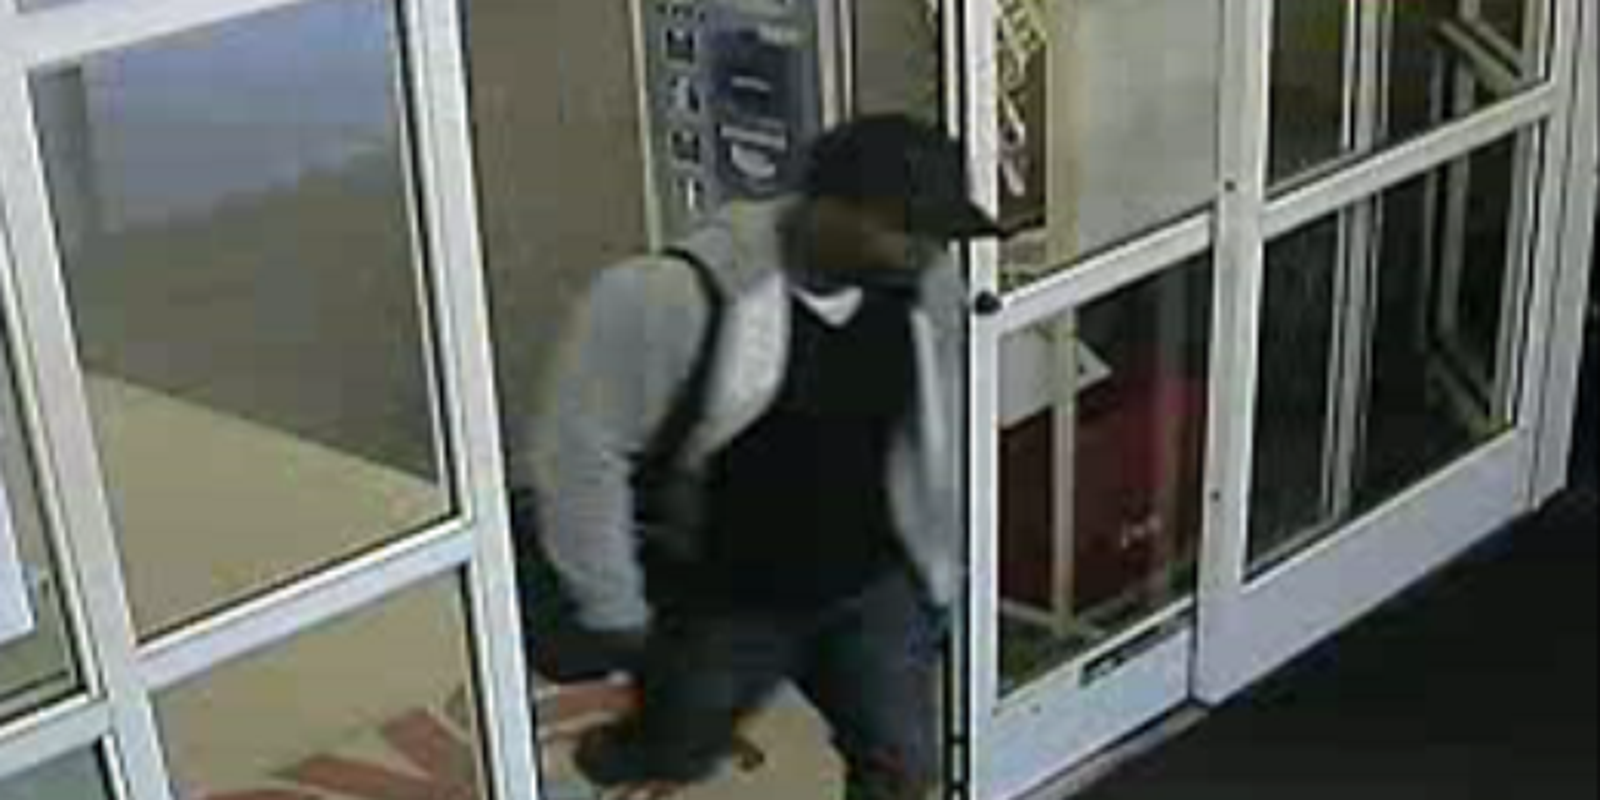 Police release image of armed robber at Wilmington CVS